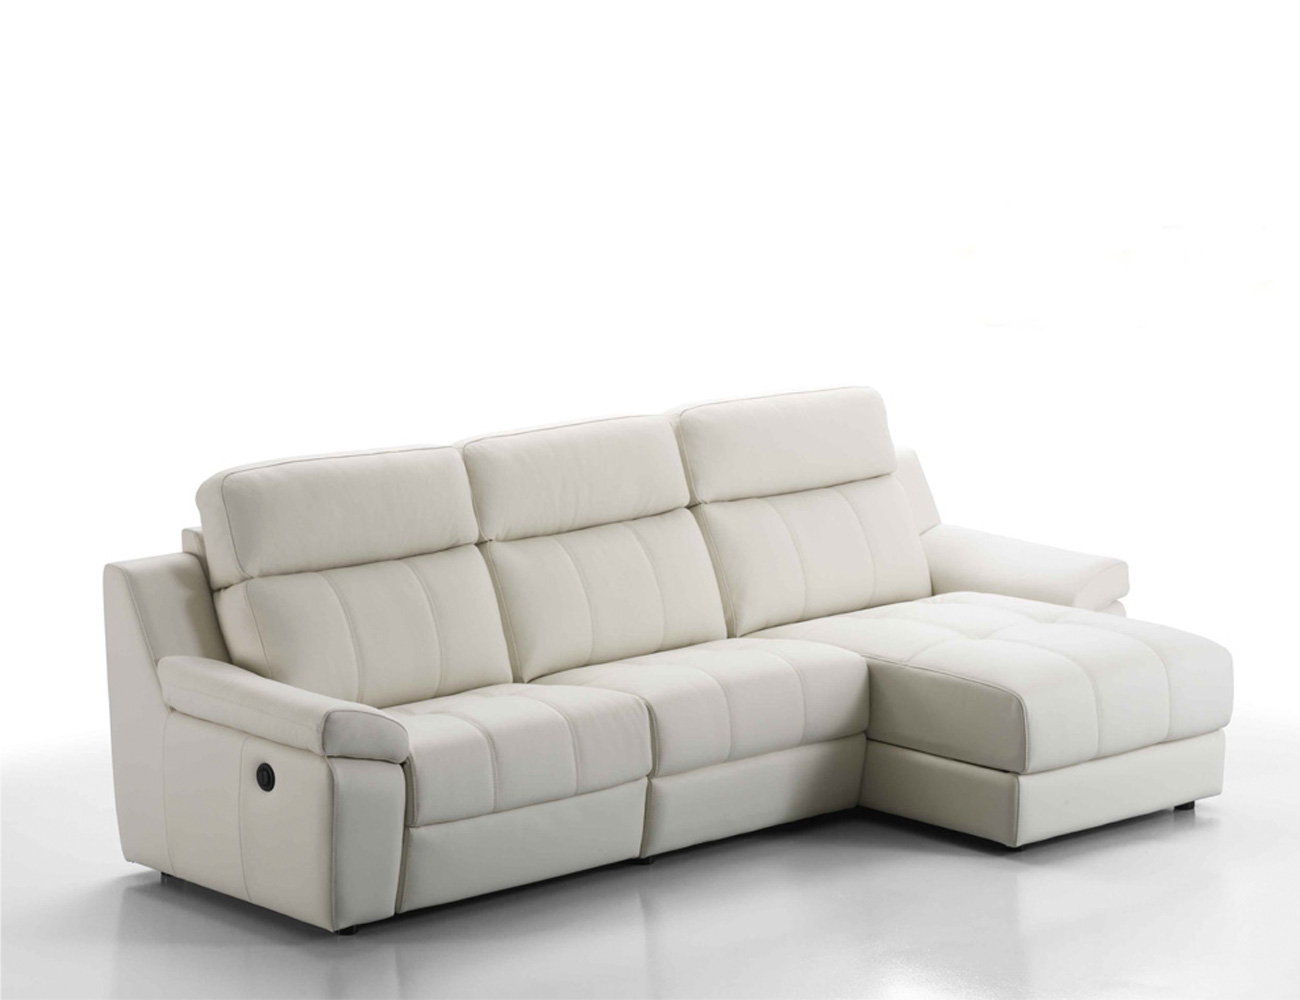 Sof chaiselongue en piel espesorada con relax el ctrico for Sofa 2 plazas polipiel